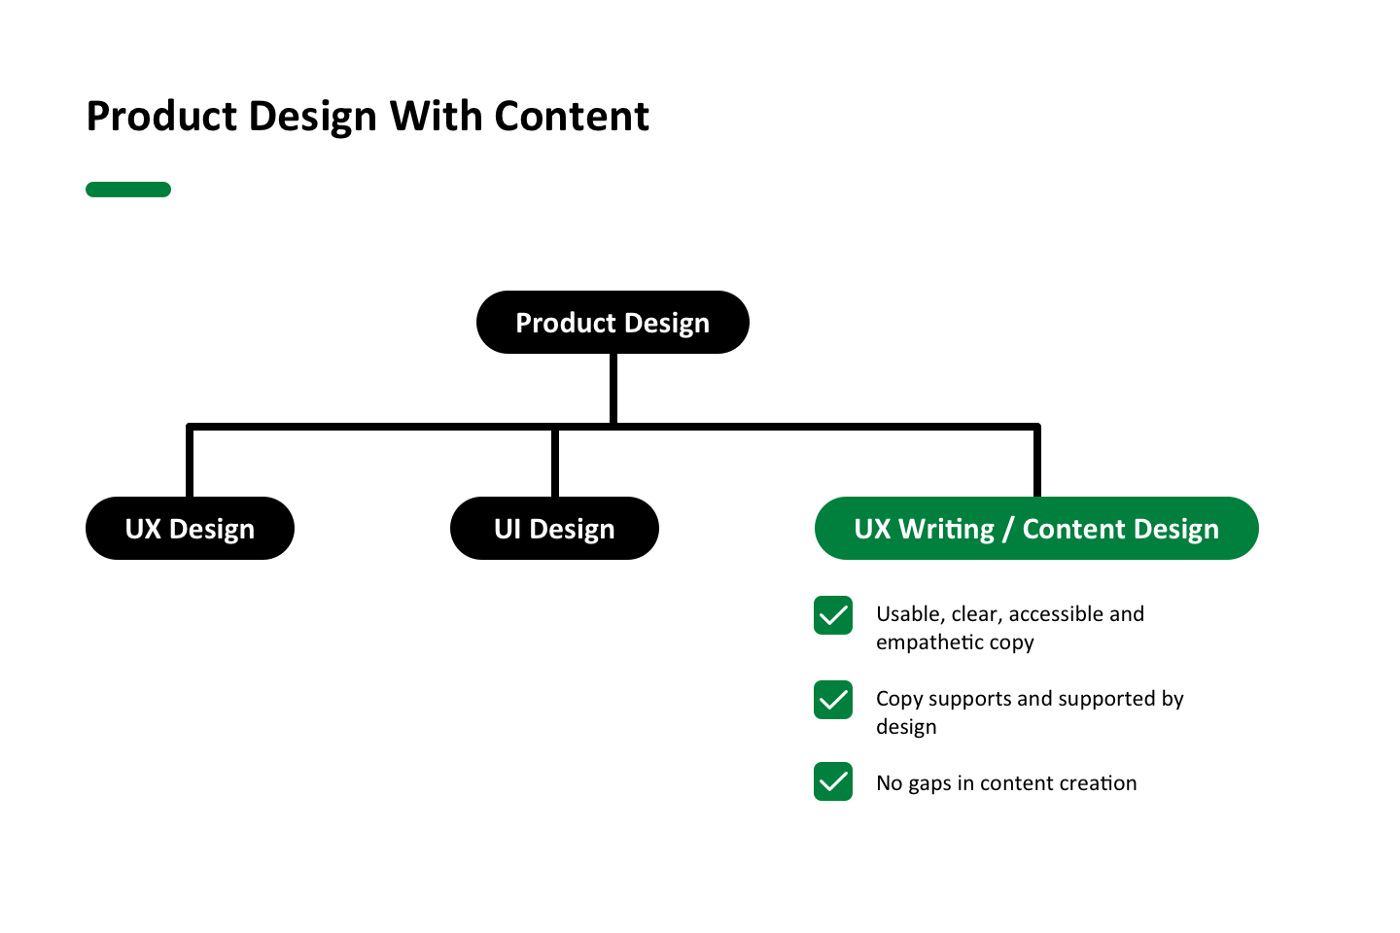 Product design that includes content design results in usable, clear, accessible and empathetic copy that supports and is supported by the design, with no gaps in content creation.